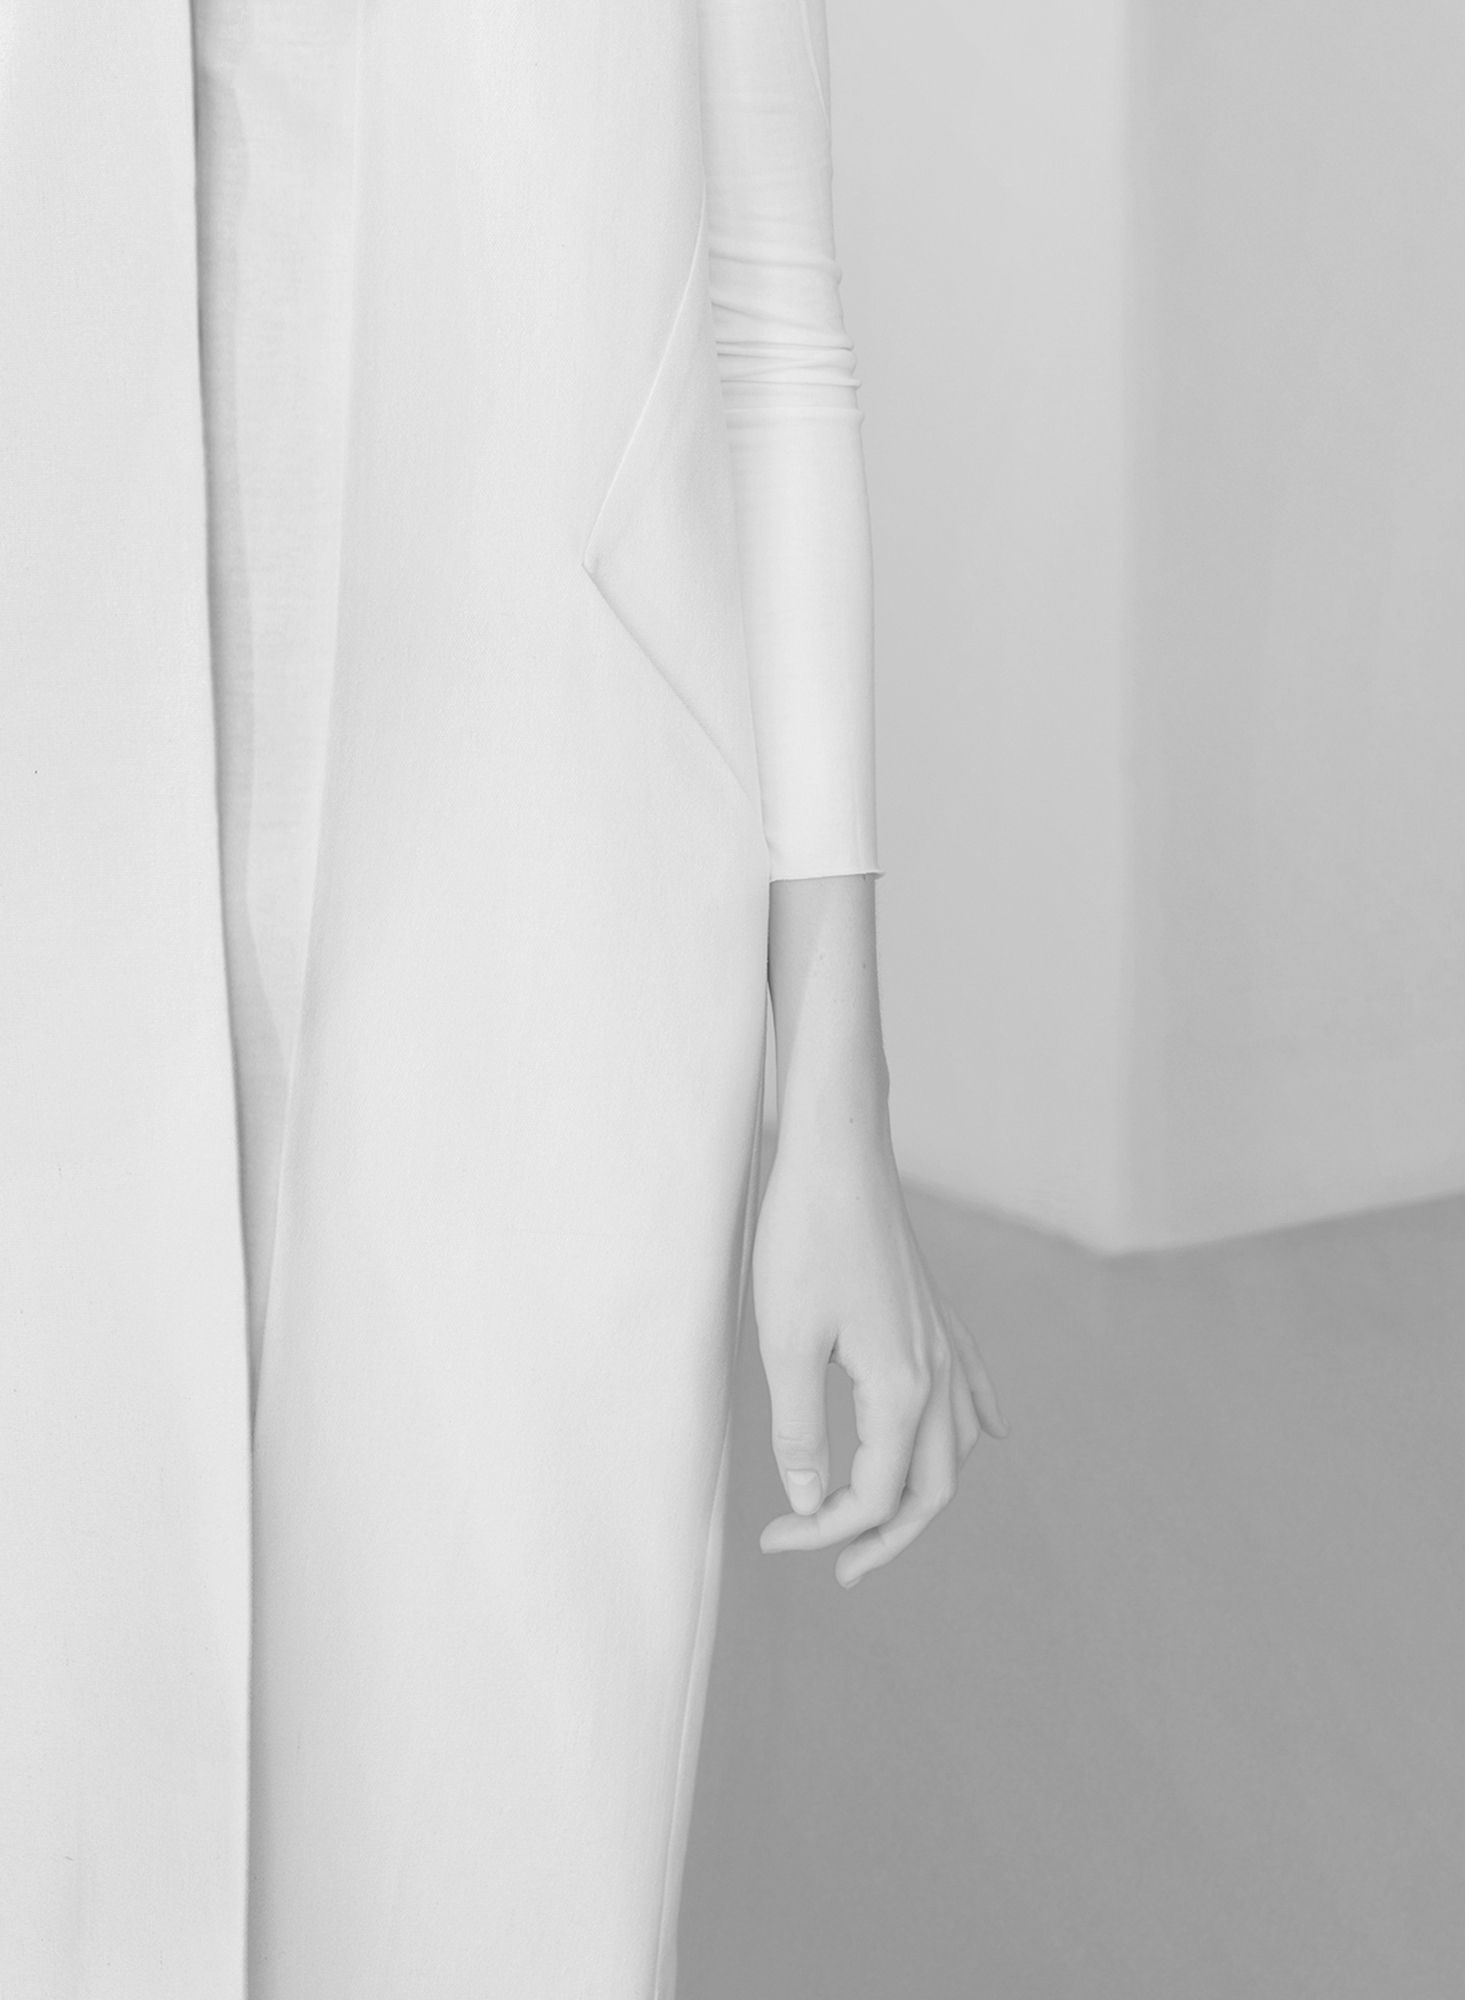 Clean detailed shot, strong linear composition. Minimal White Coat ...